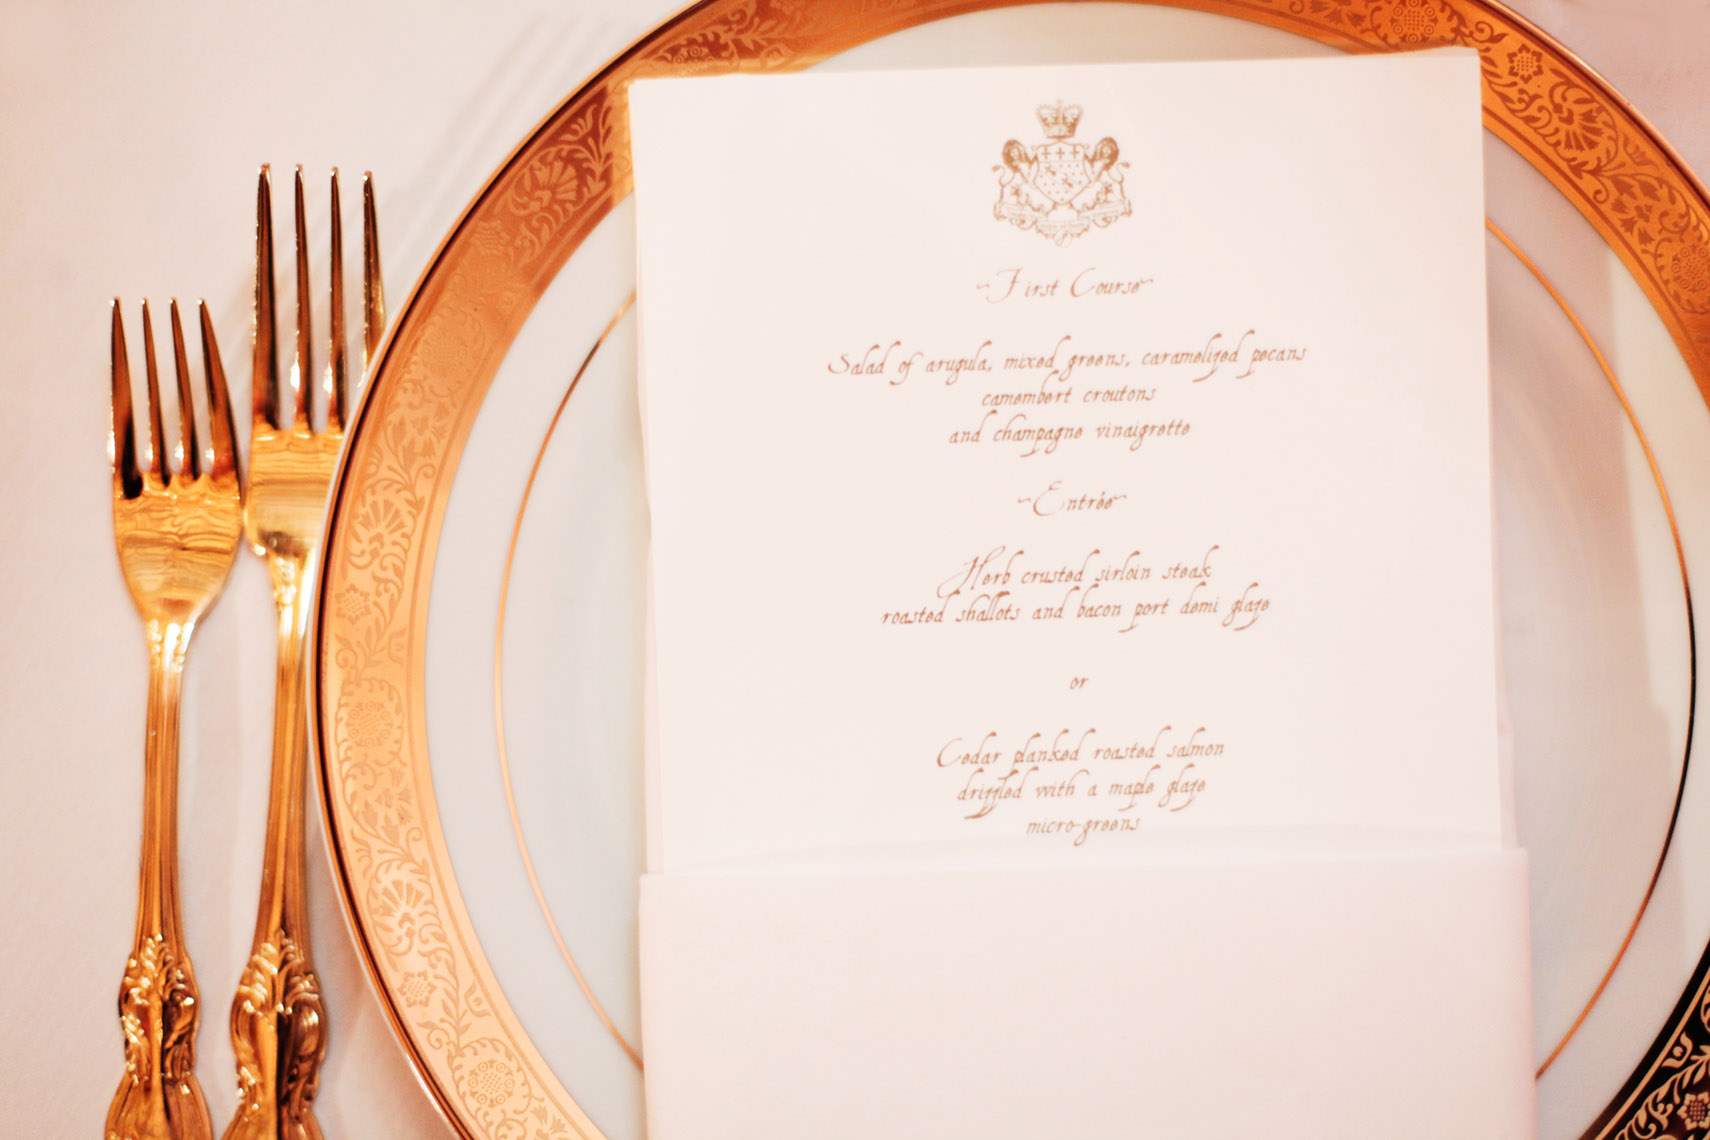 Bently Reserve Table Setting